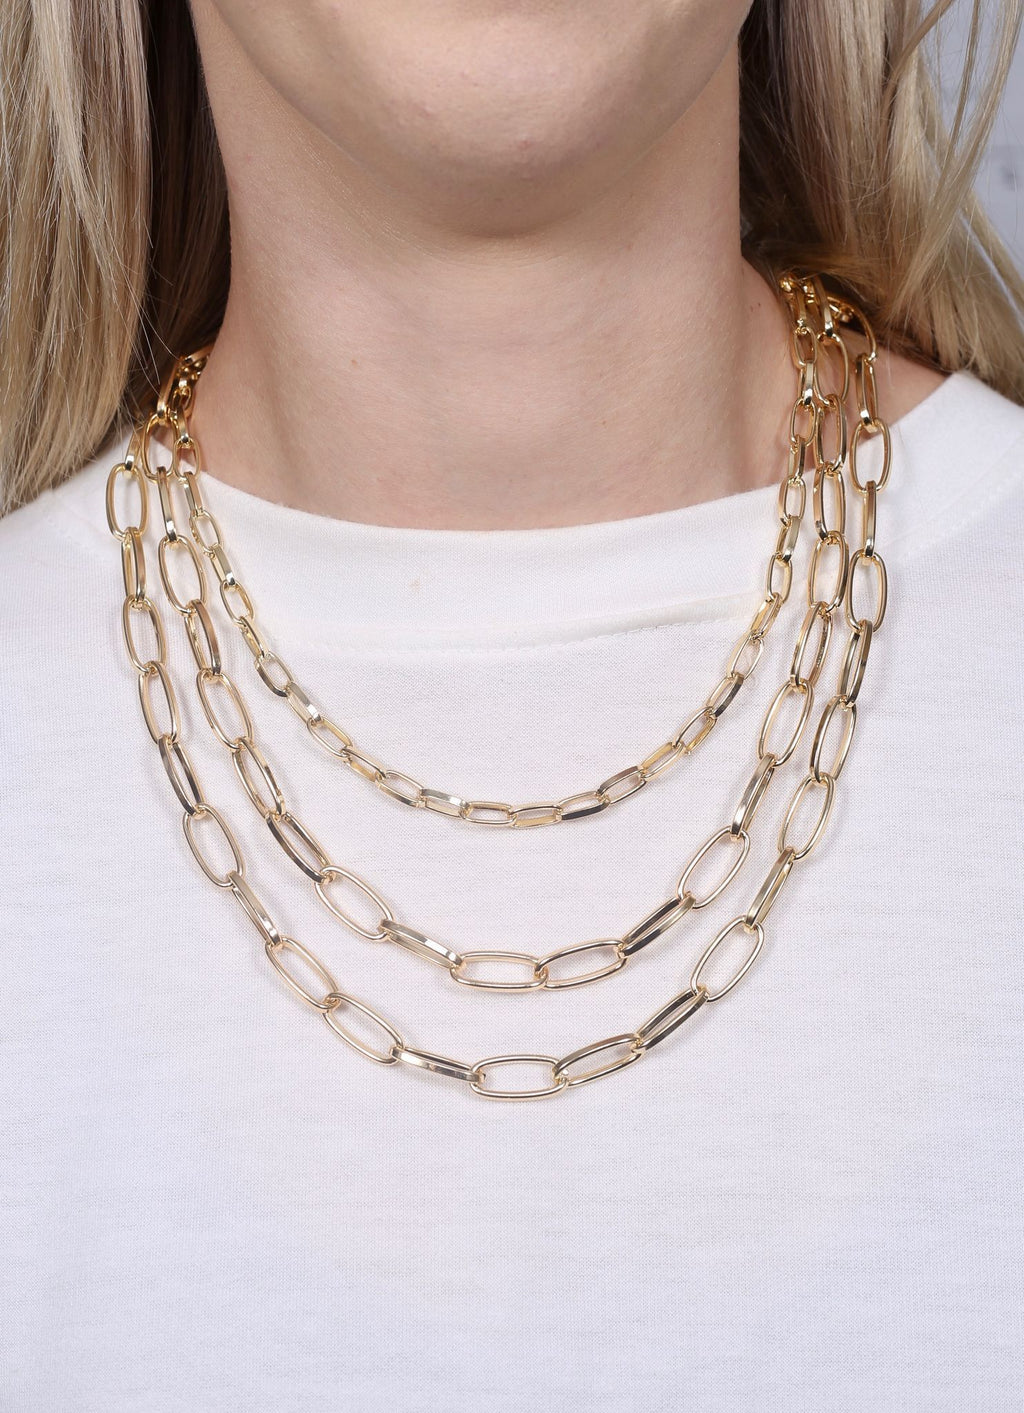 Balfour Gold Metal Link Necklace - Caroline Hill